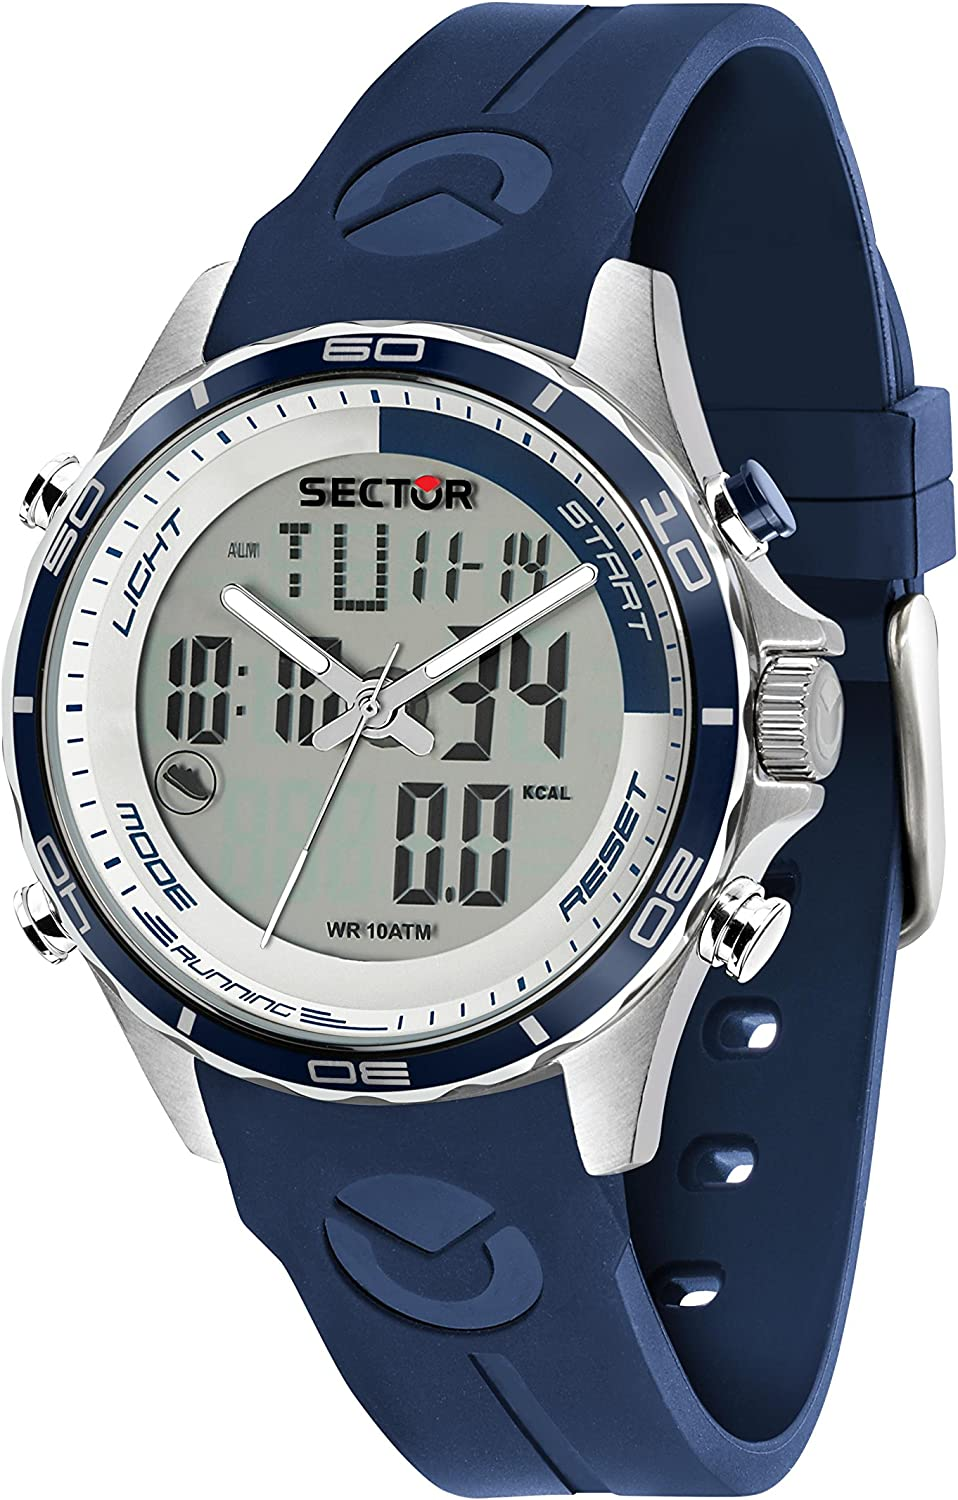 Sector No Limits Men s Master Stainless Steel Analog-Quartz Sport Watch with Silicone Strap, Blue, 18 Model R3271615003